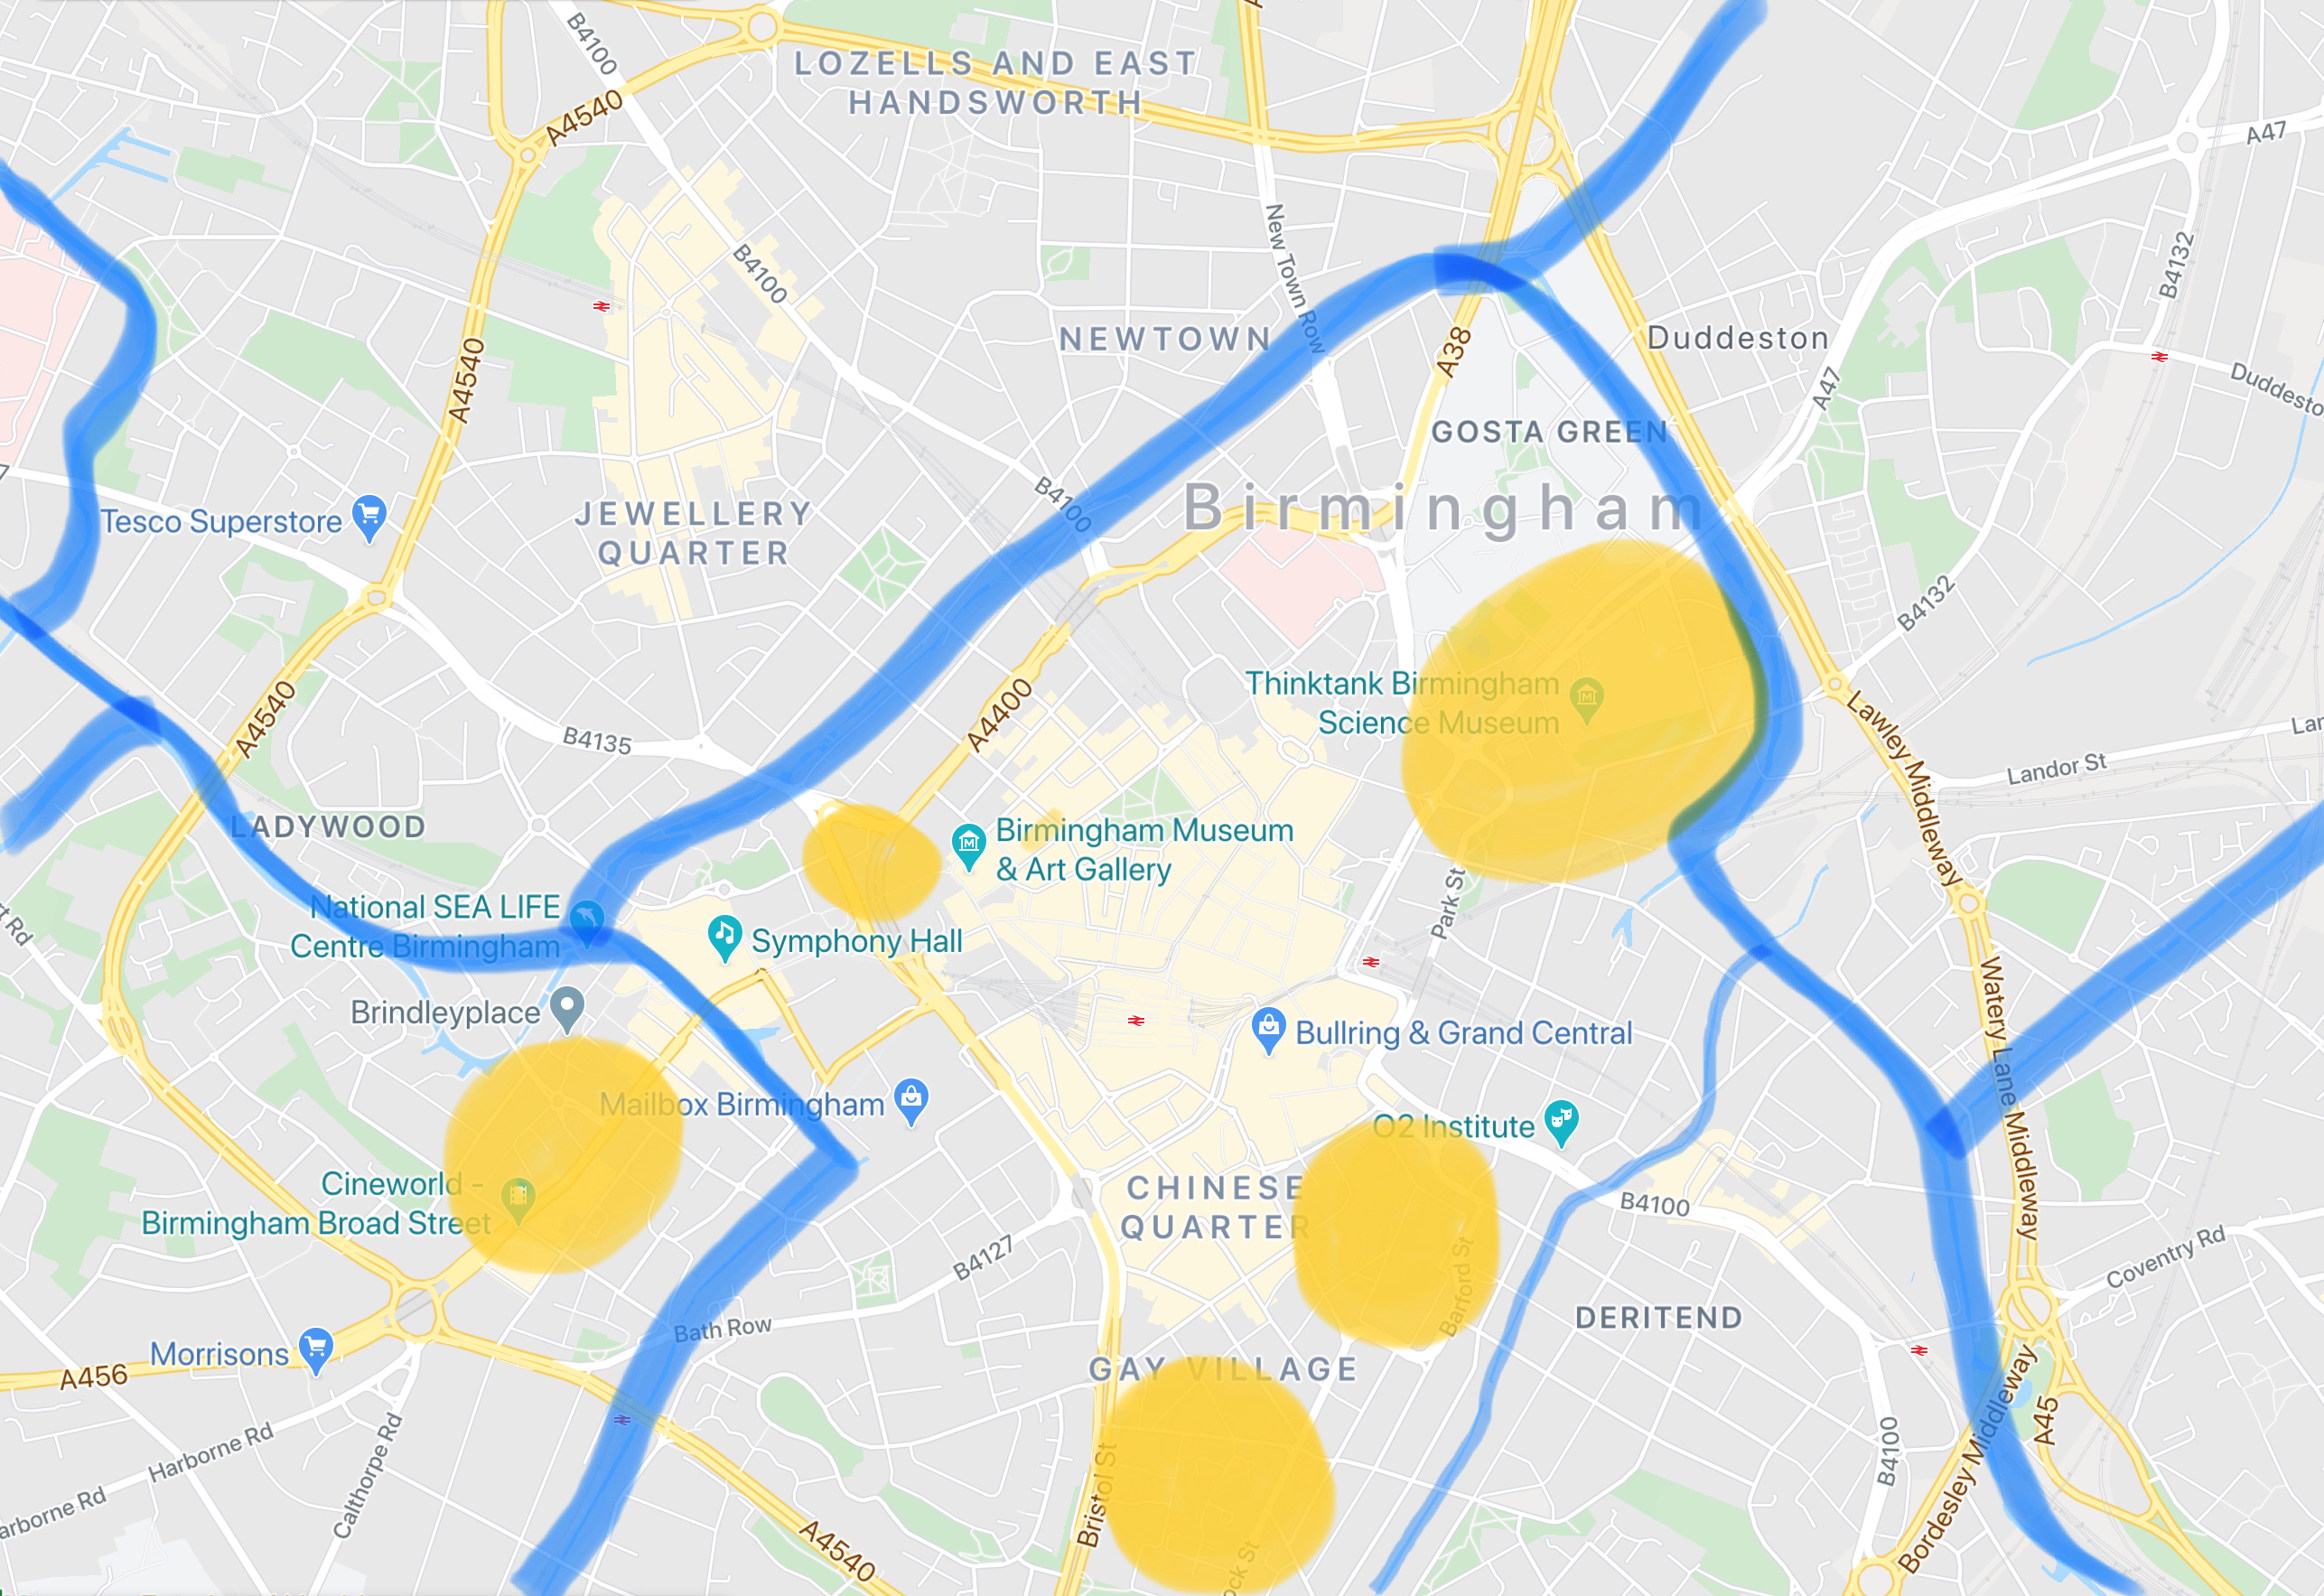 Map of canals (2020 Google Maps Data)